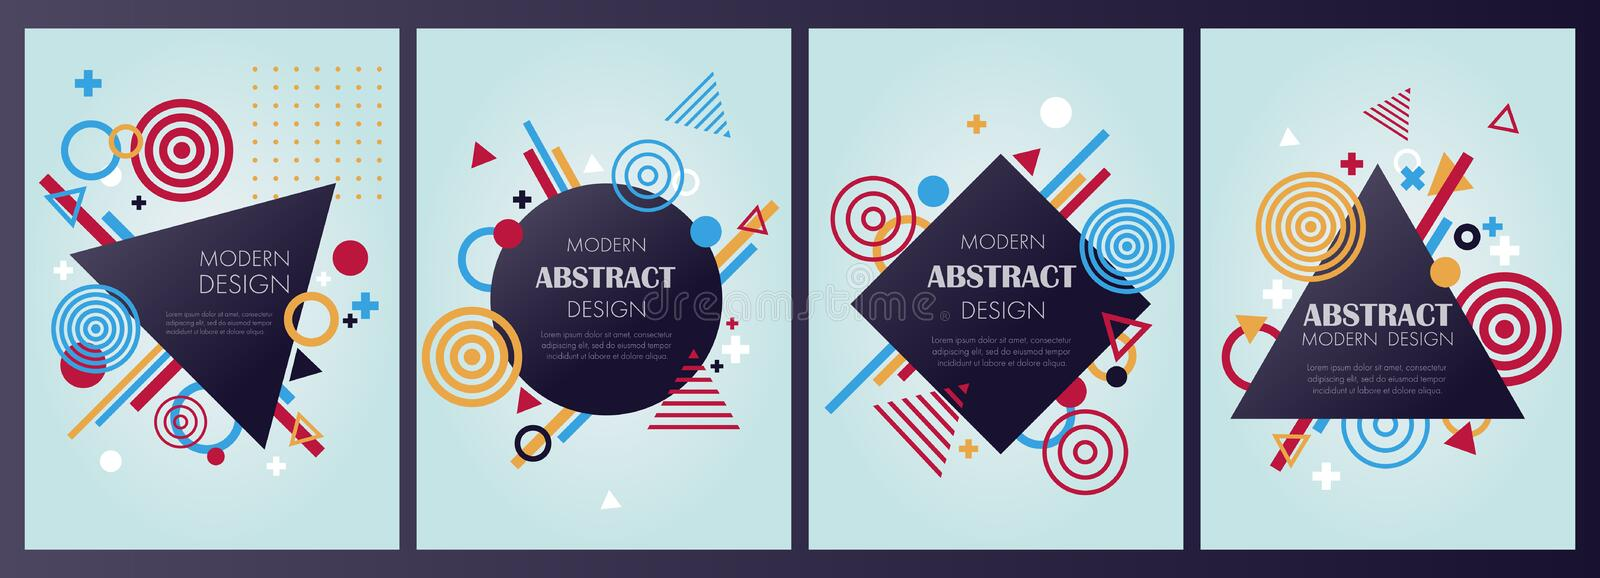 Set of bstract modern banner and background in vector. Demonstrates geometric elements, shapes and signs can be used as a banner, brochure or part of the modern stock illustration